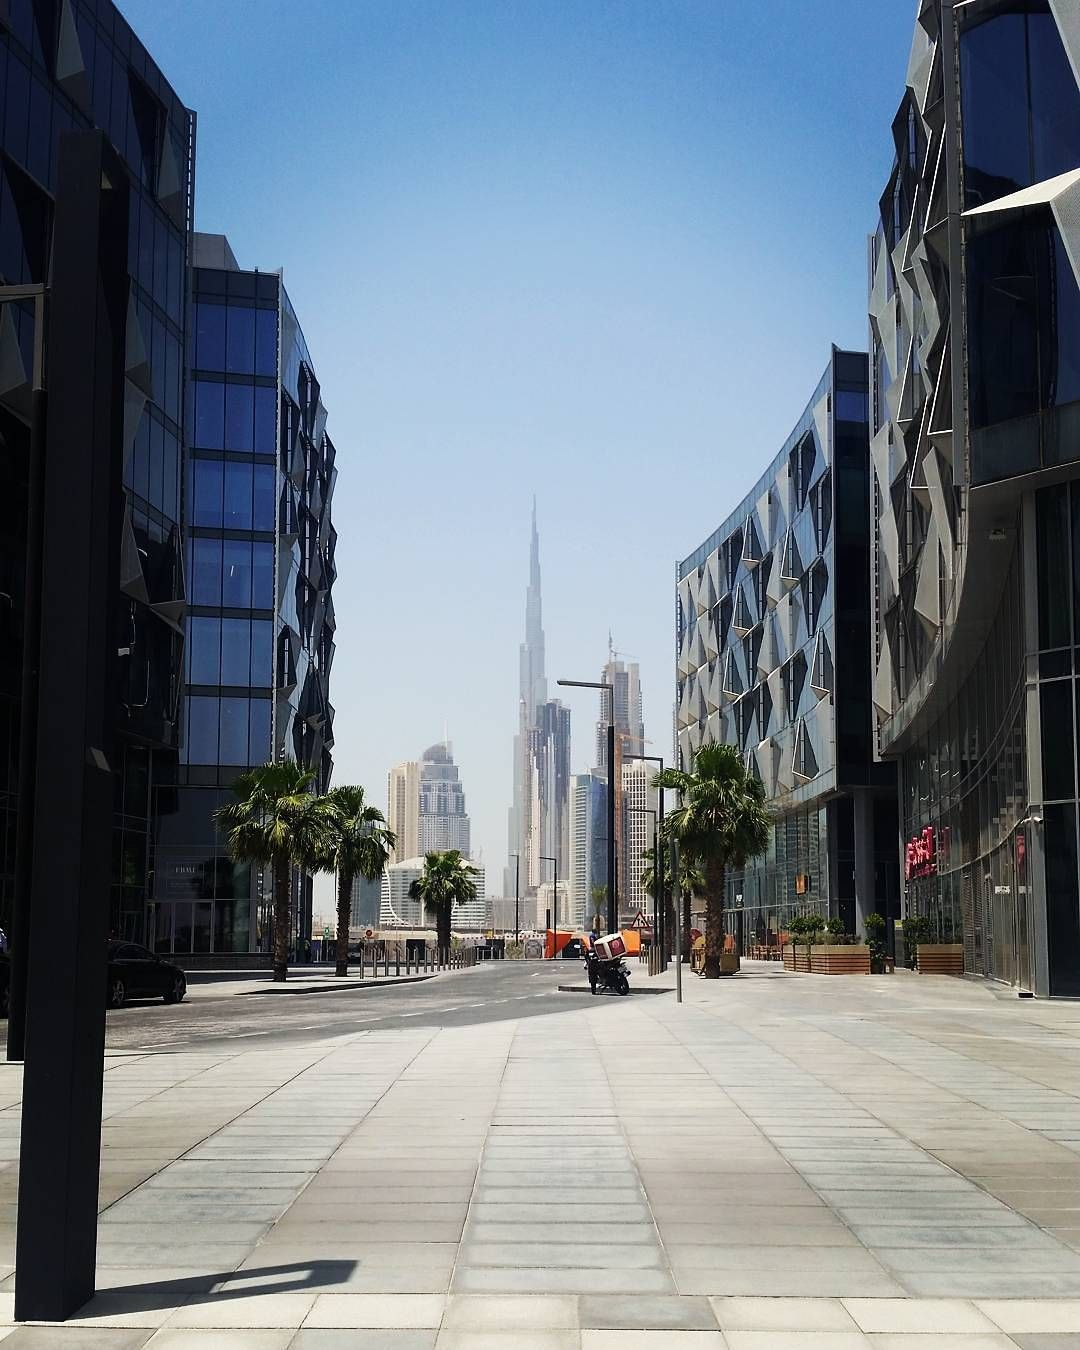 Dubai... the most vibrant city in Middle East! Bank of